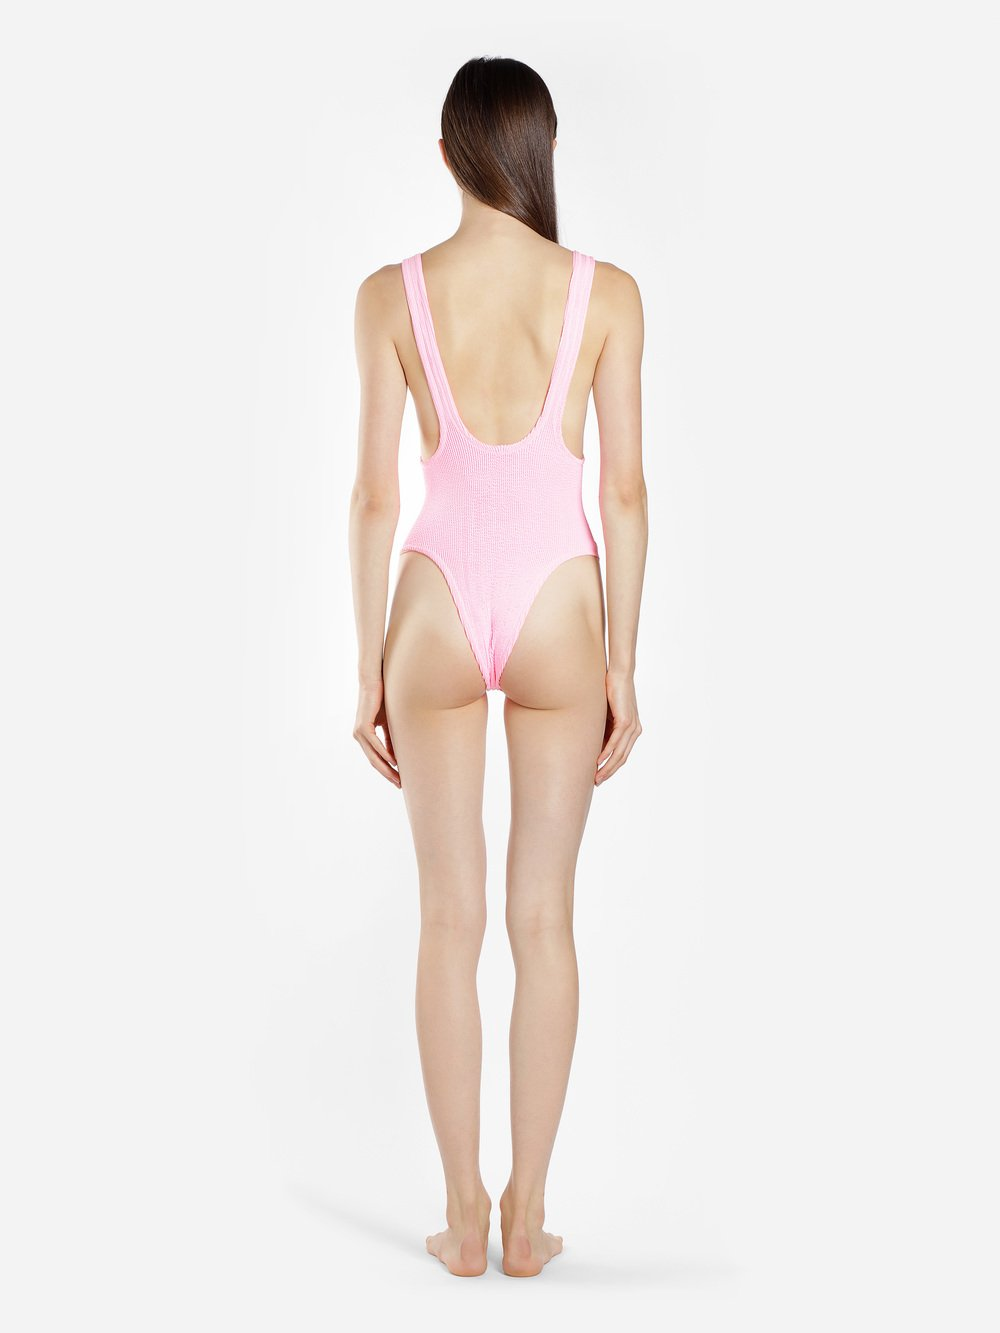 RUBYSCRUNCHSWIMSUIT PINK image